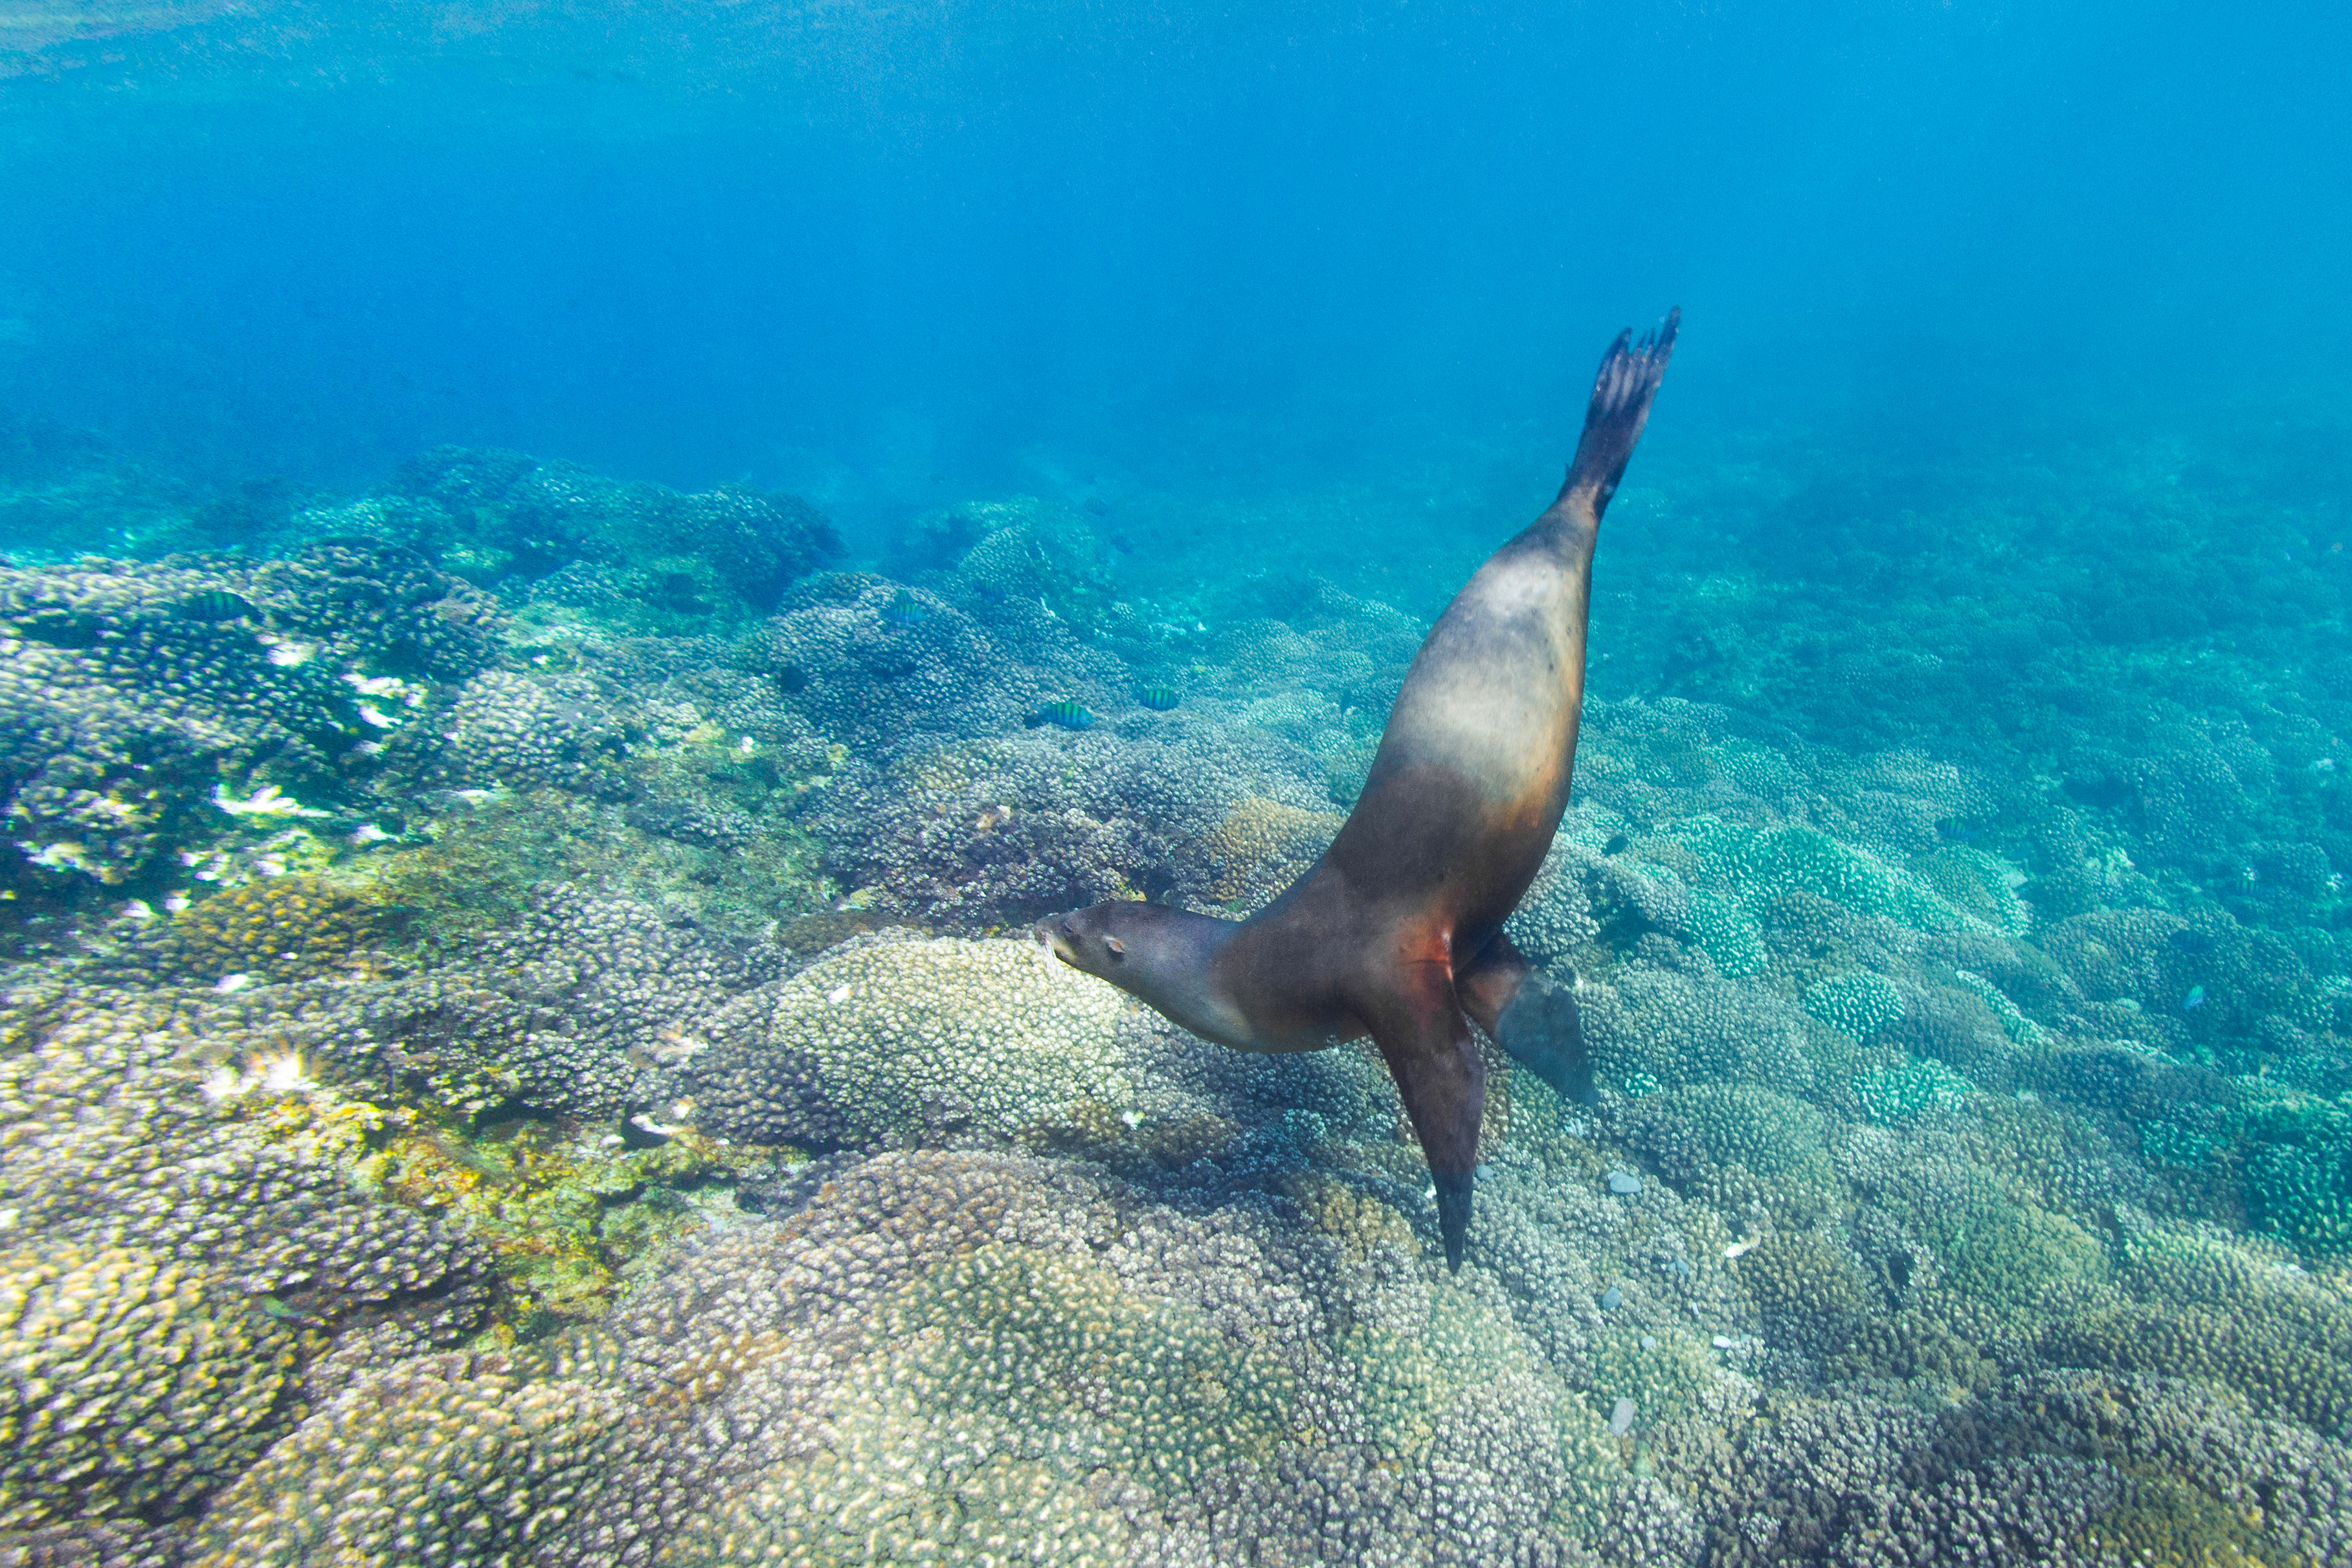 Sea lion at Cabo San Lucas, Mexico, by Kate Holt